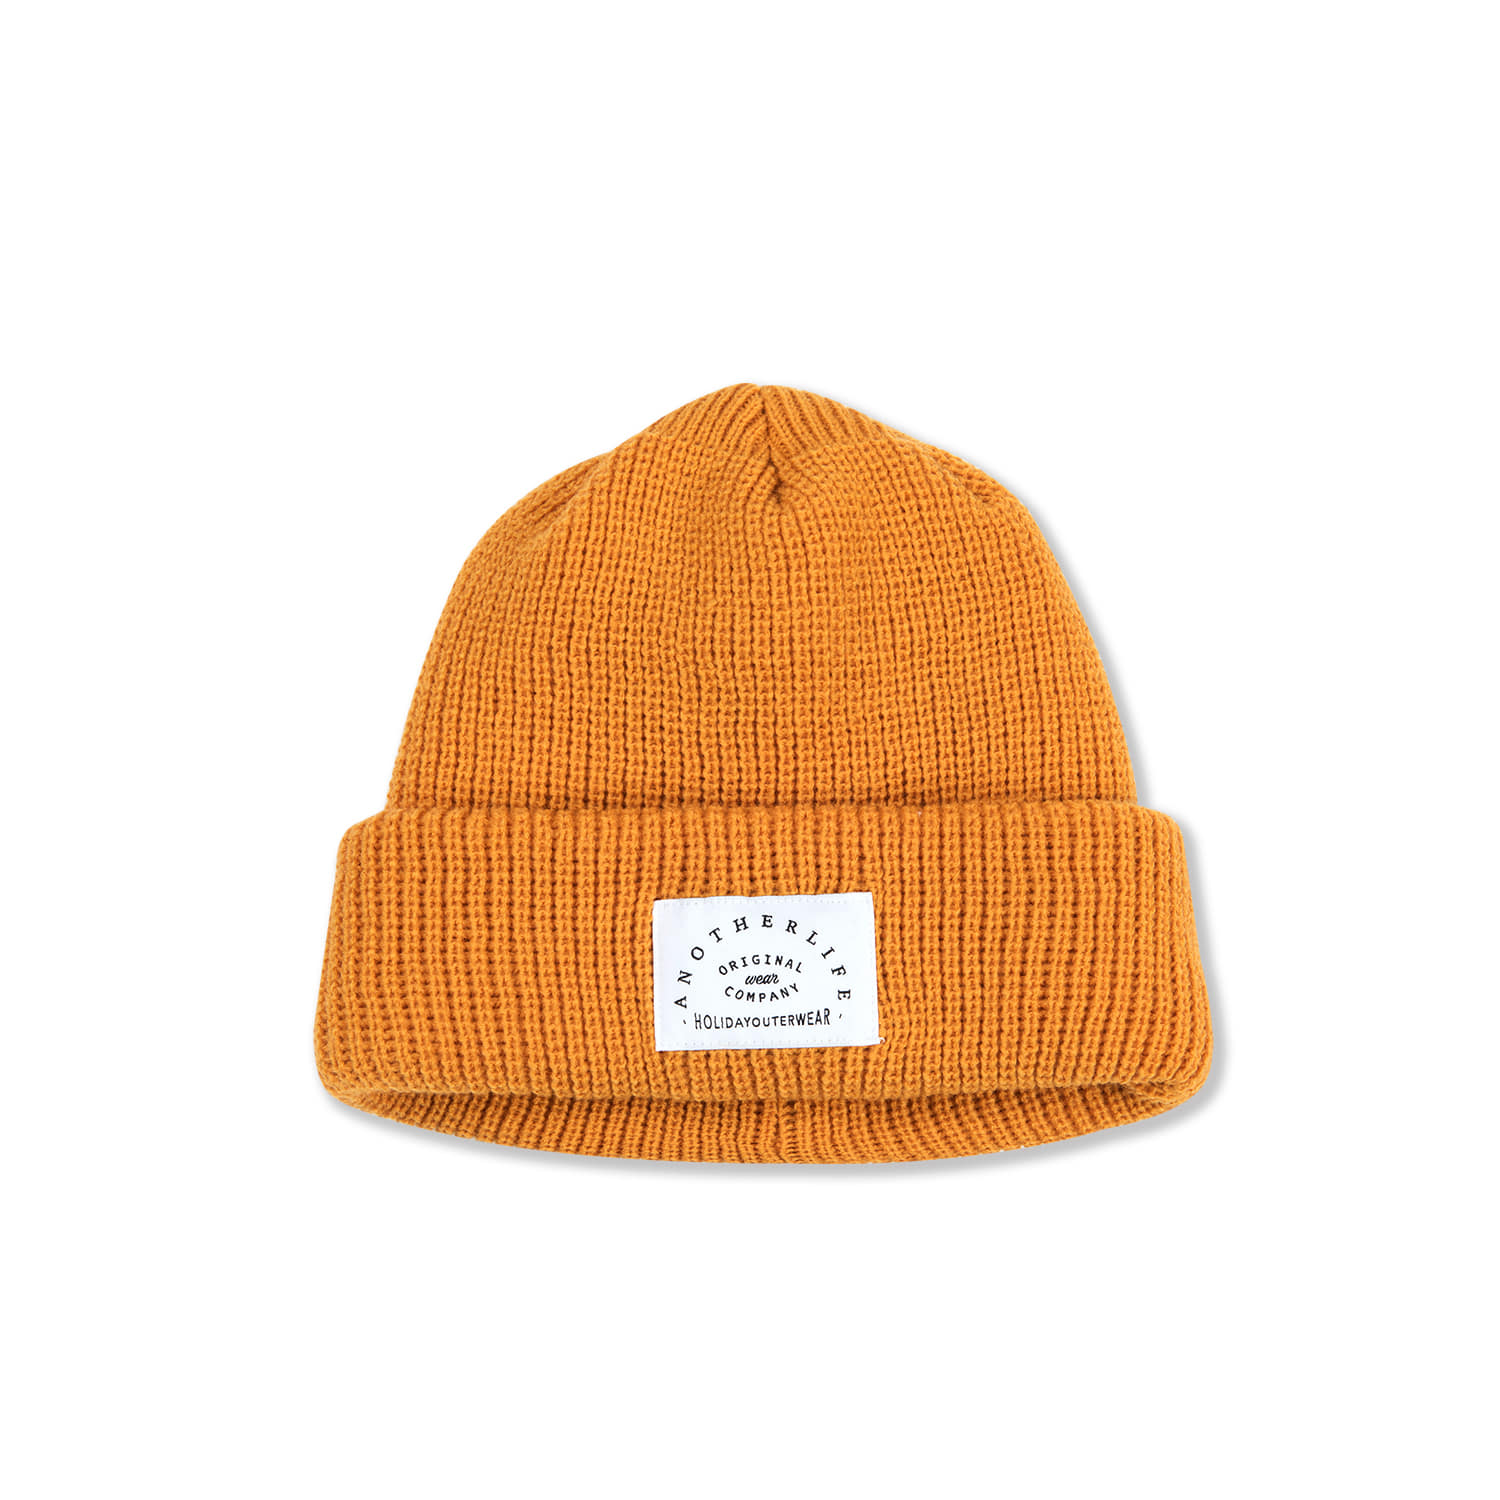 CLASSIC beanie - mustardHOLIDAY OUTERWEAR